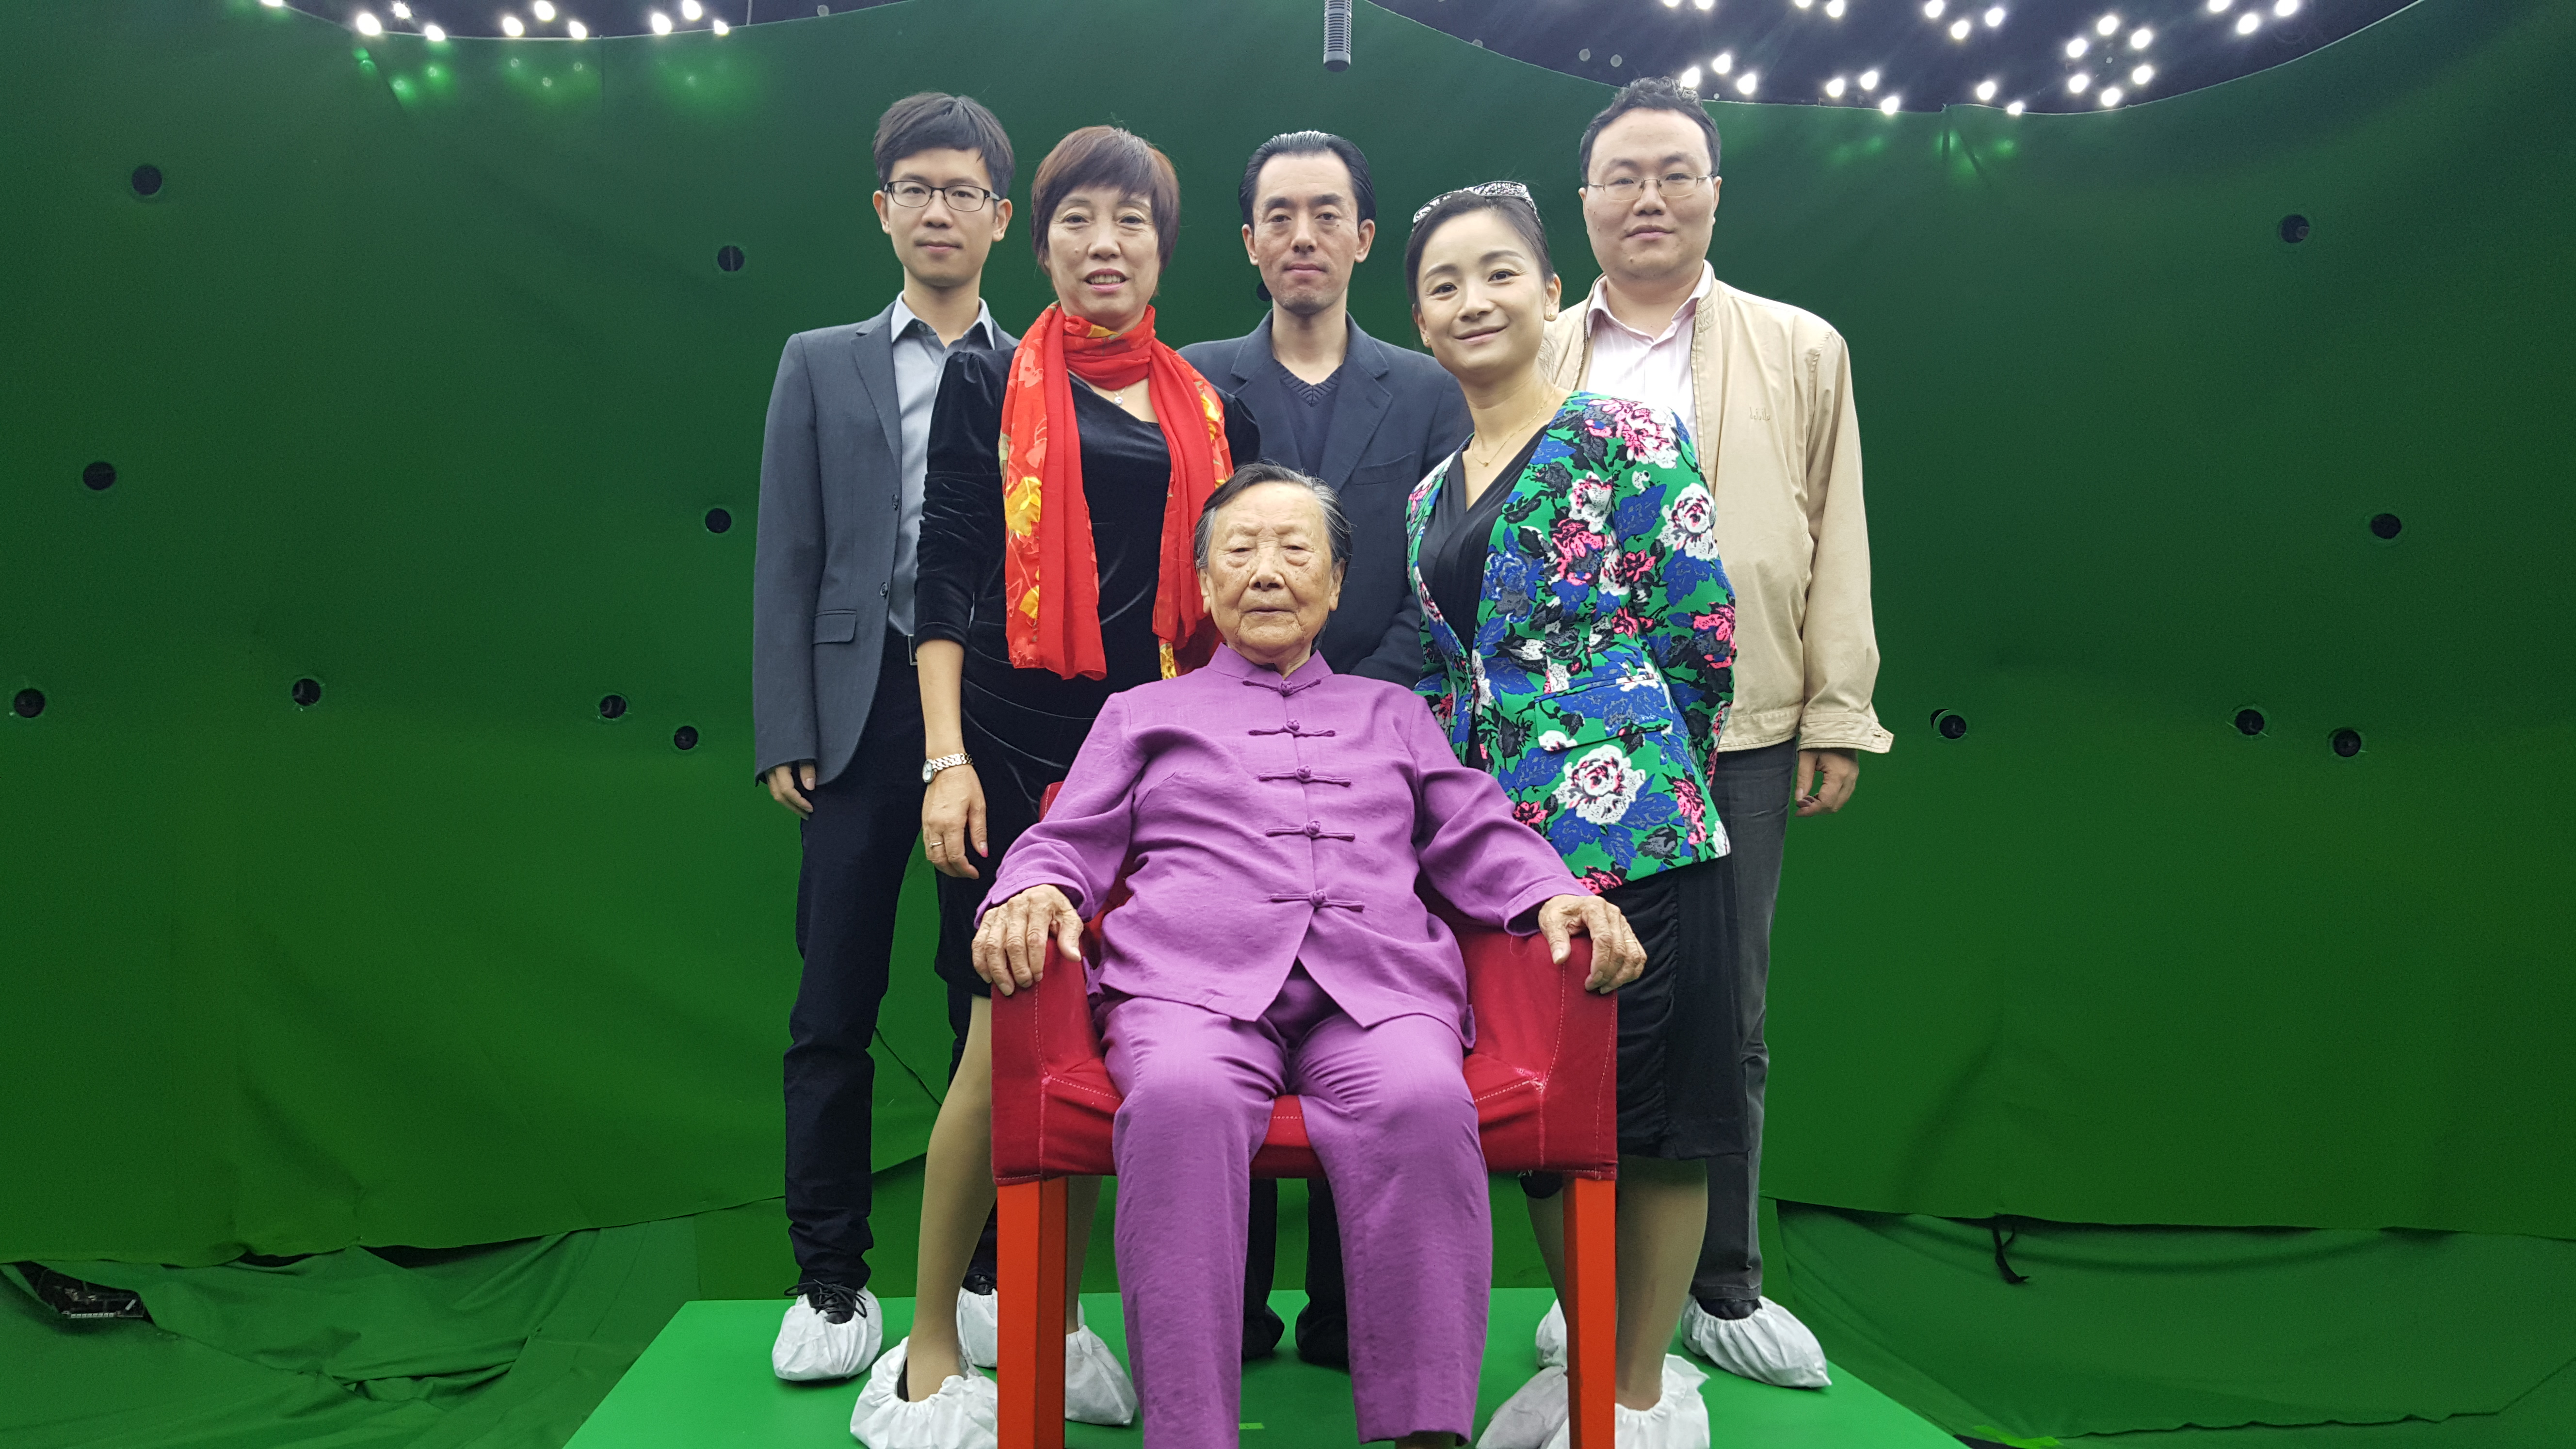 "On the light stage: Back Left to Right: Cheng Fang, Hao Mingping, Lu Yanming, Xia Yuan, Chen ""Mickey"" Gong, Front: Mme Xia"